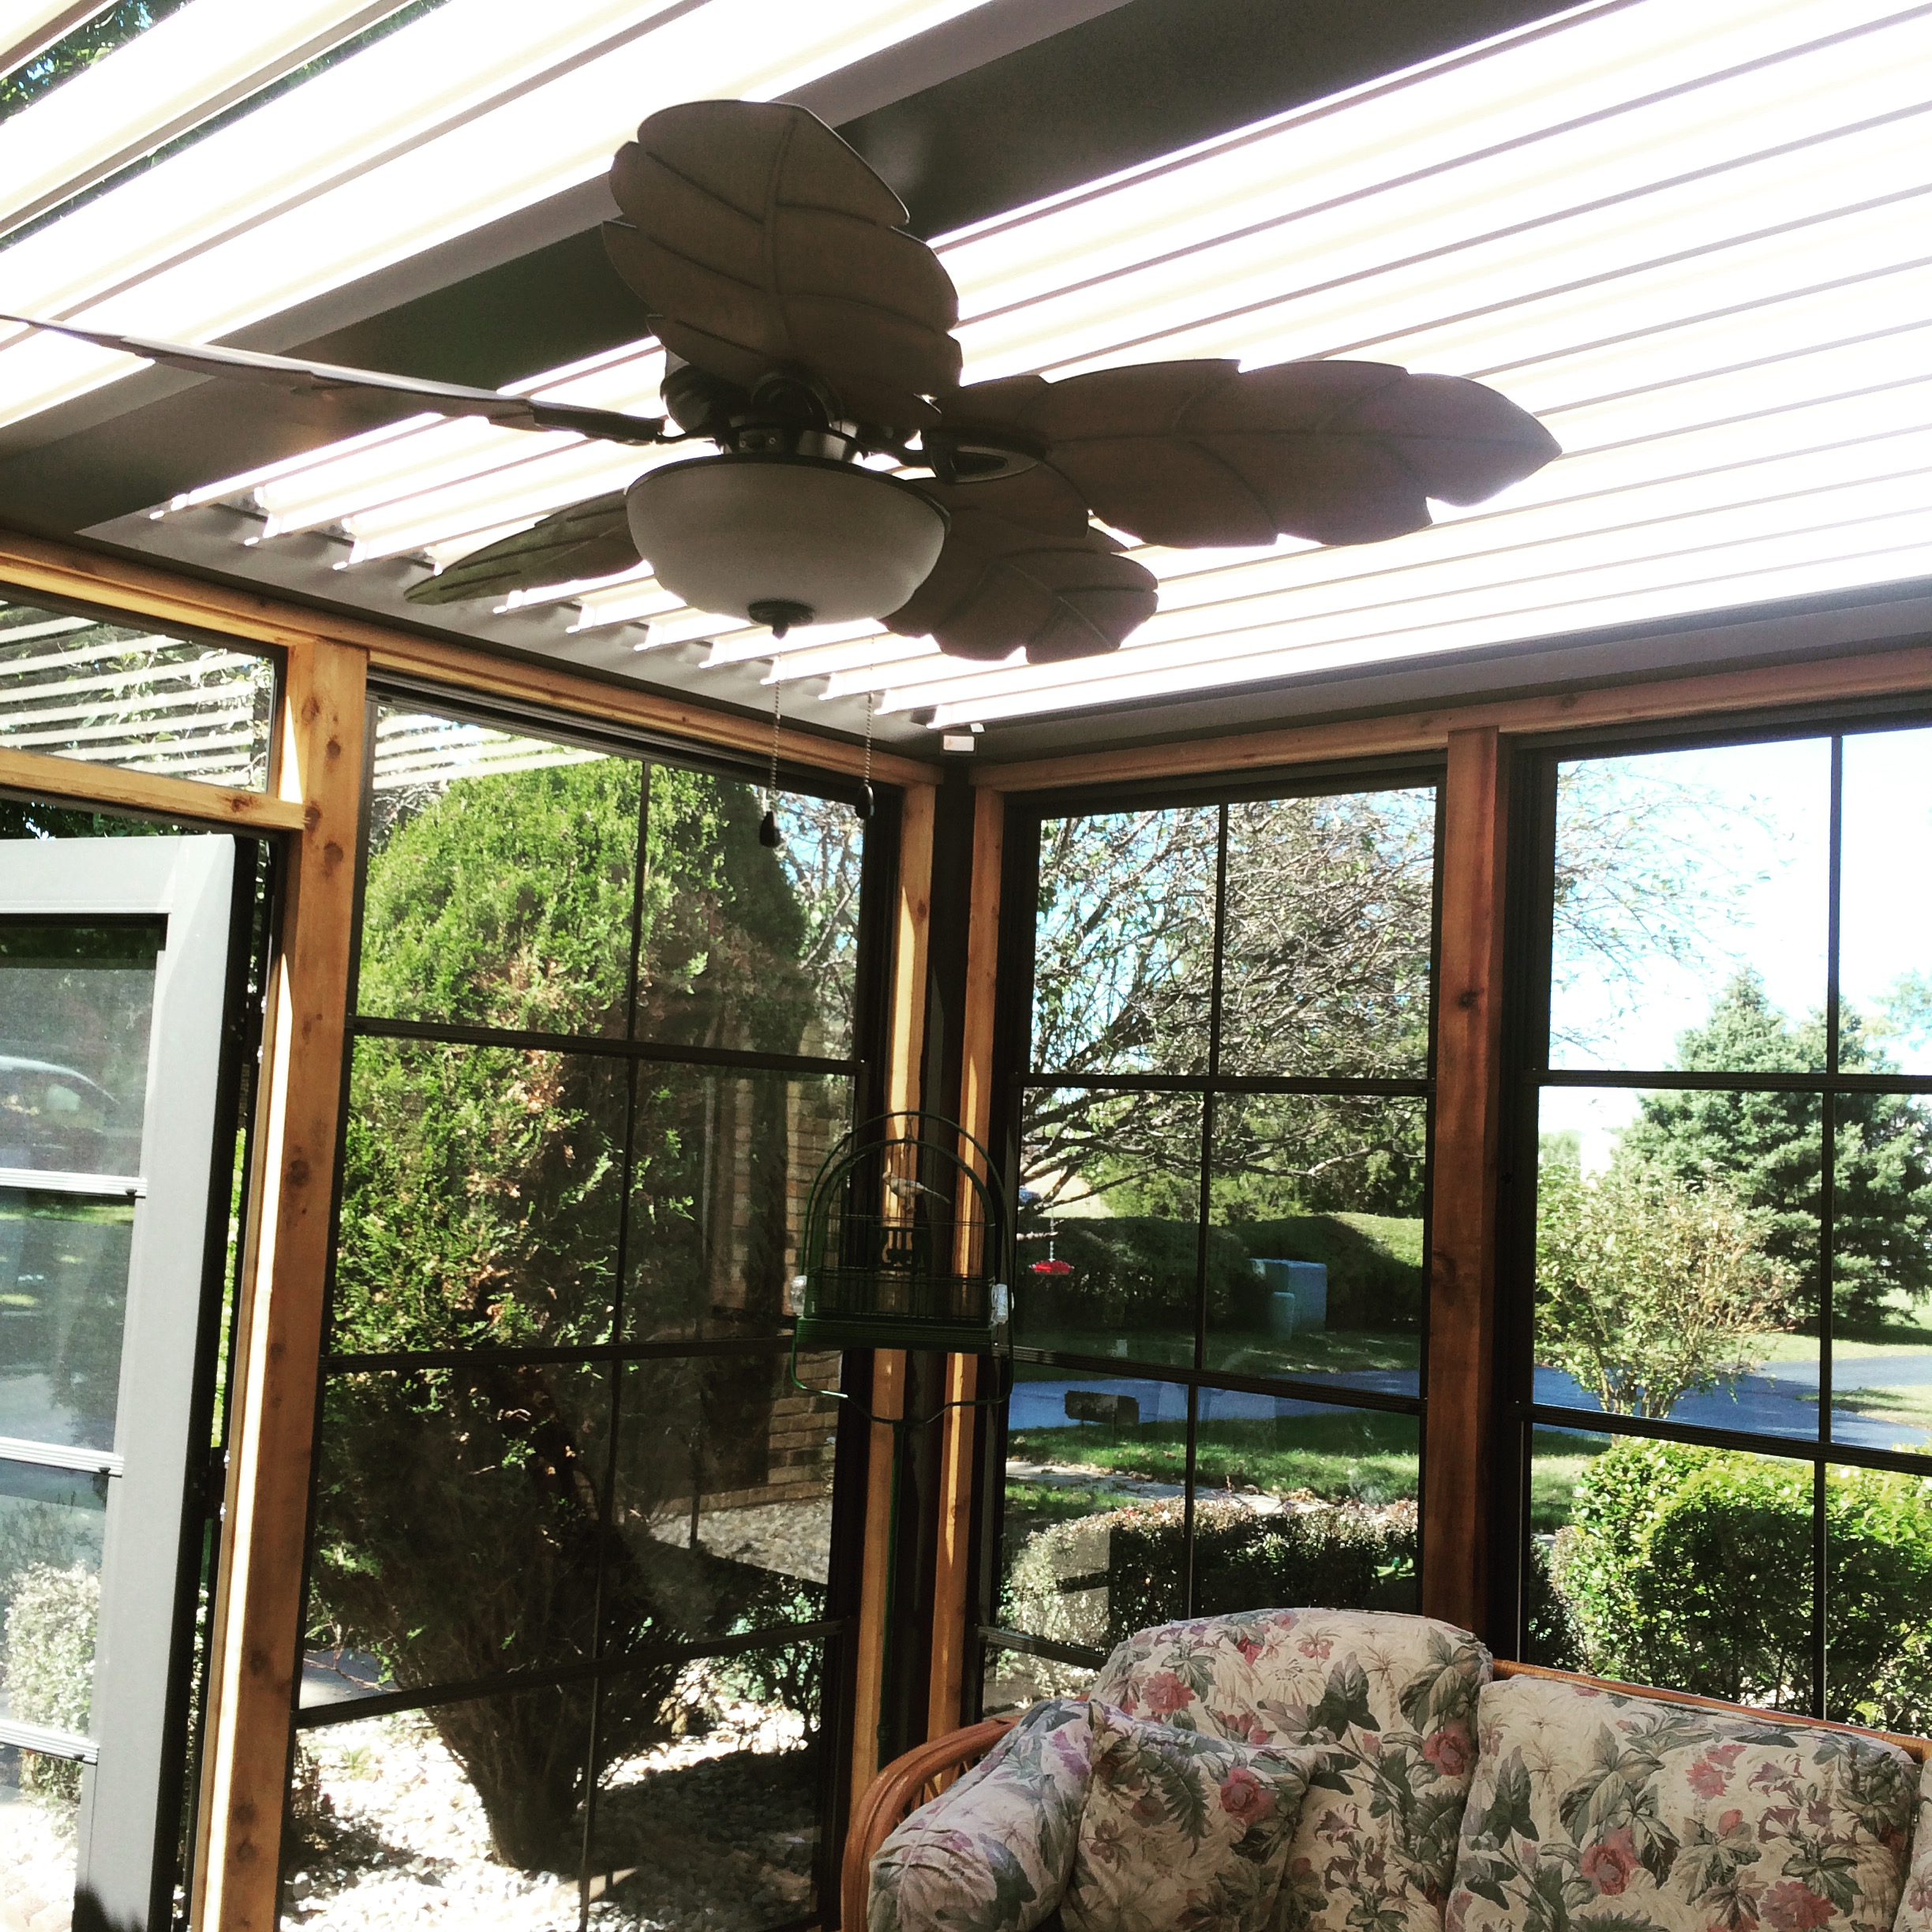 Indianapolis, IN - Patio cover - Attached